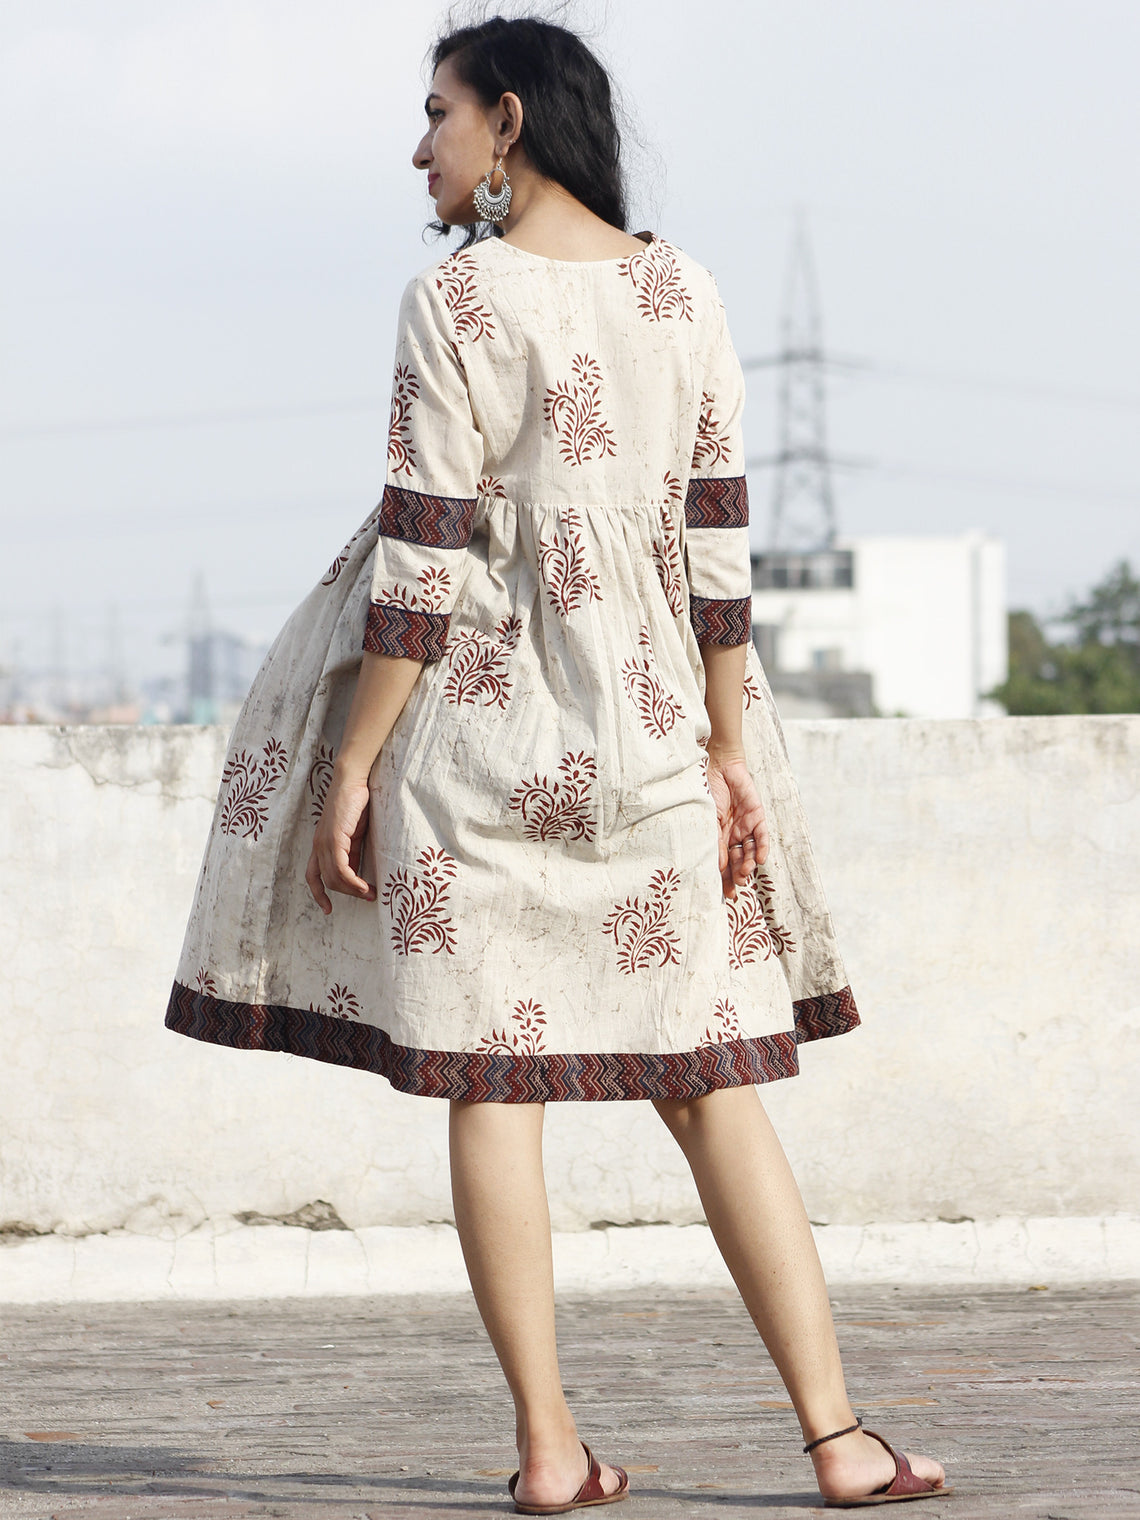 Beige Maroon Indigo Hand Block Printed Cotton Dress With Ajrakh Printed Border & Gathers - D73F428